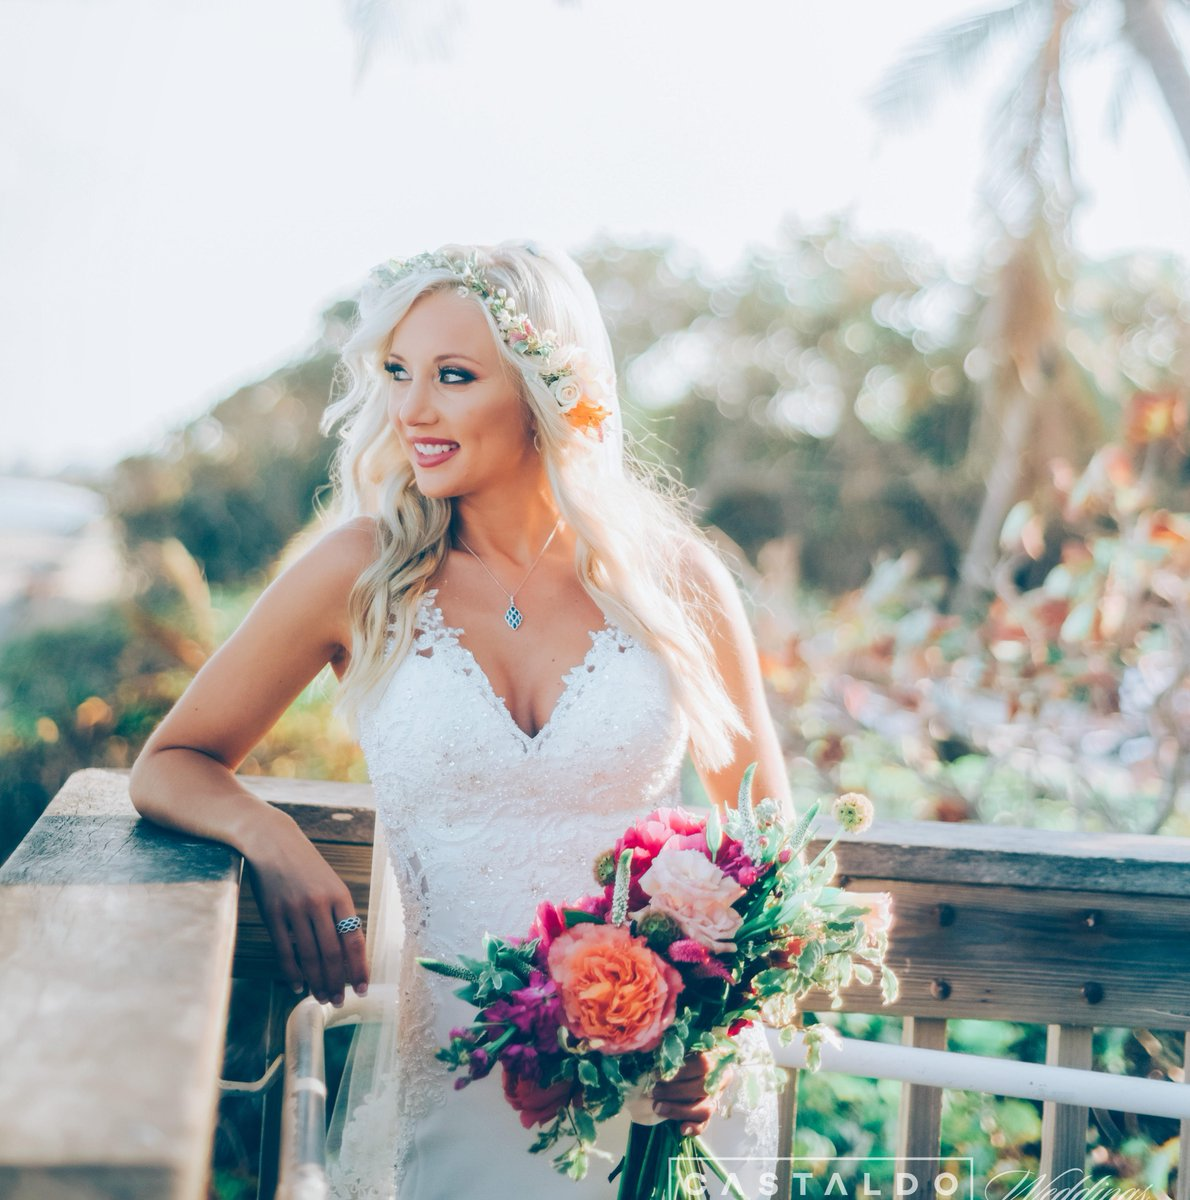 There's nothing more stunning than a JBR bride. 👰#OnlyAtJBR 📷: Castaldo Wedding https://t.co/yMIliiiAeY